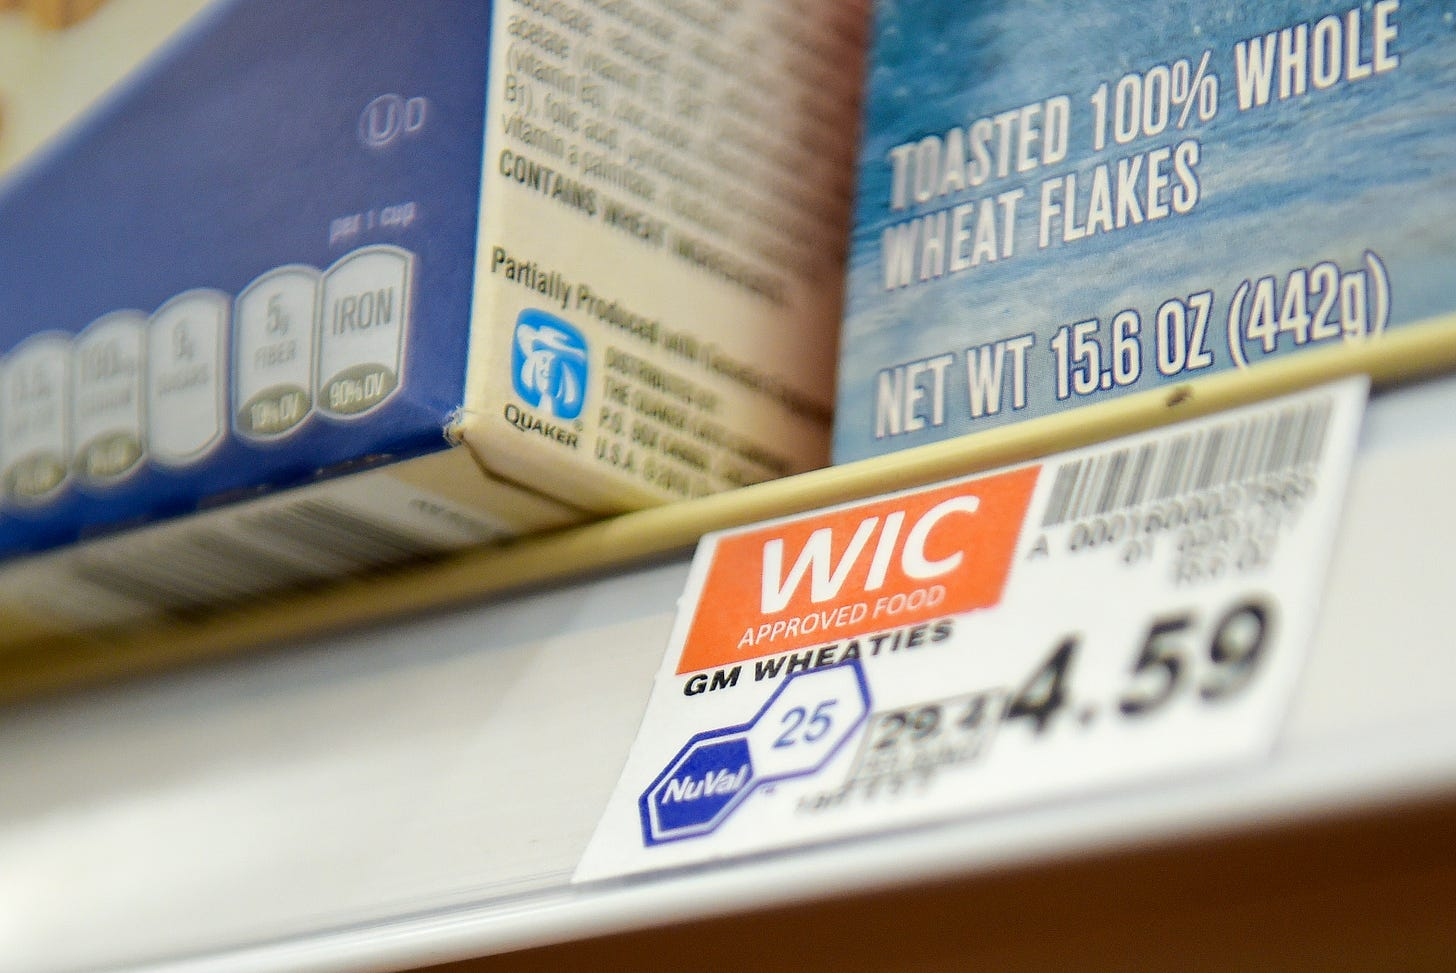 Items approved for the WIC program are labeled next to their price on the shelf.